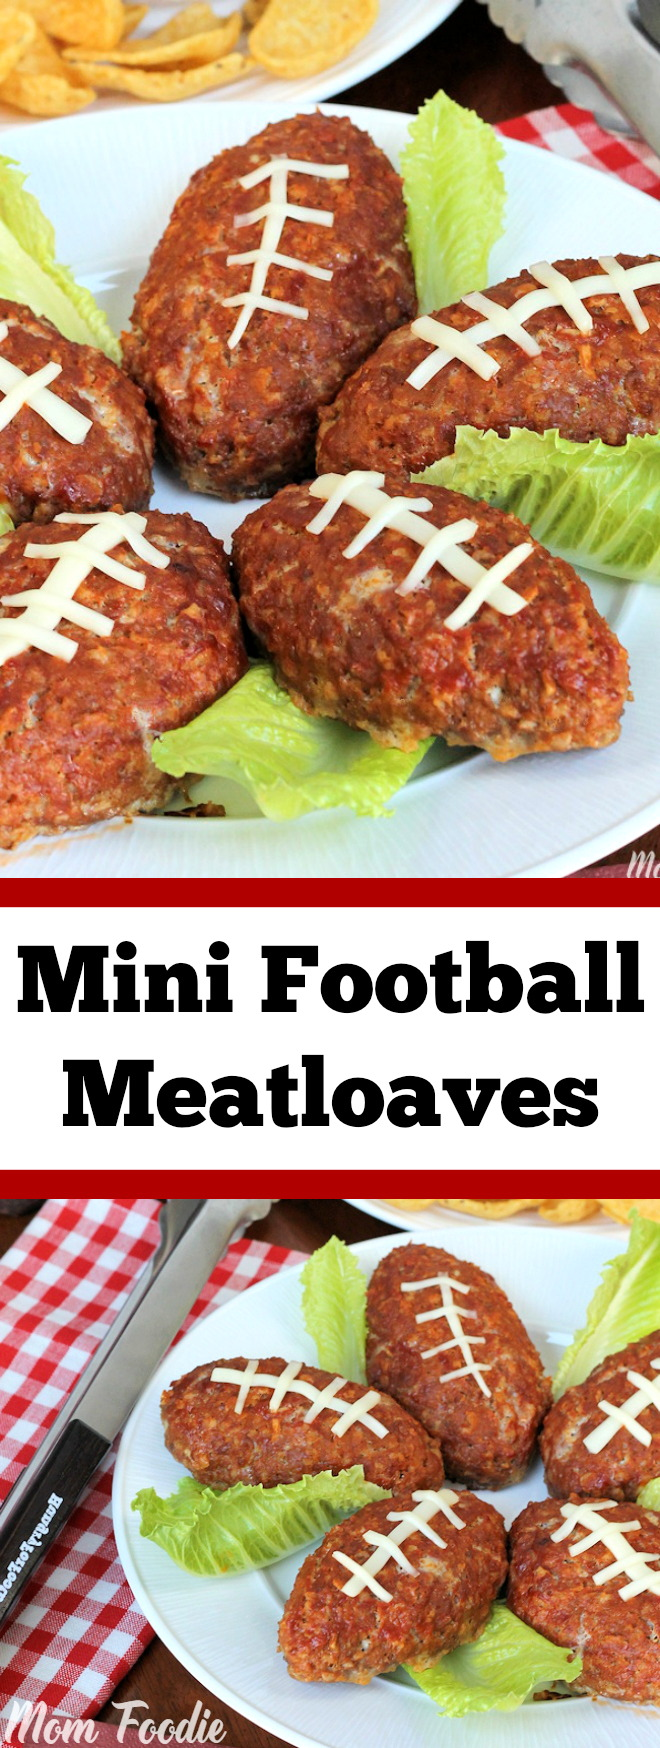 Football Mini Meatloaves are an easy football party food that guests will love.